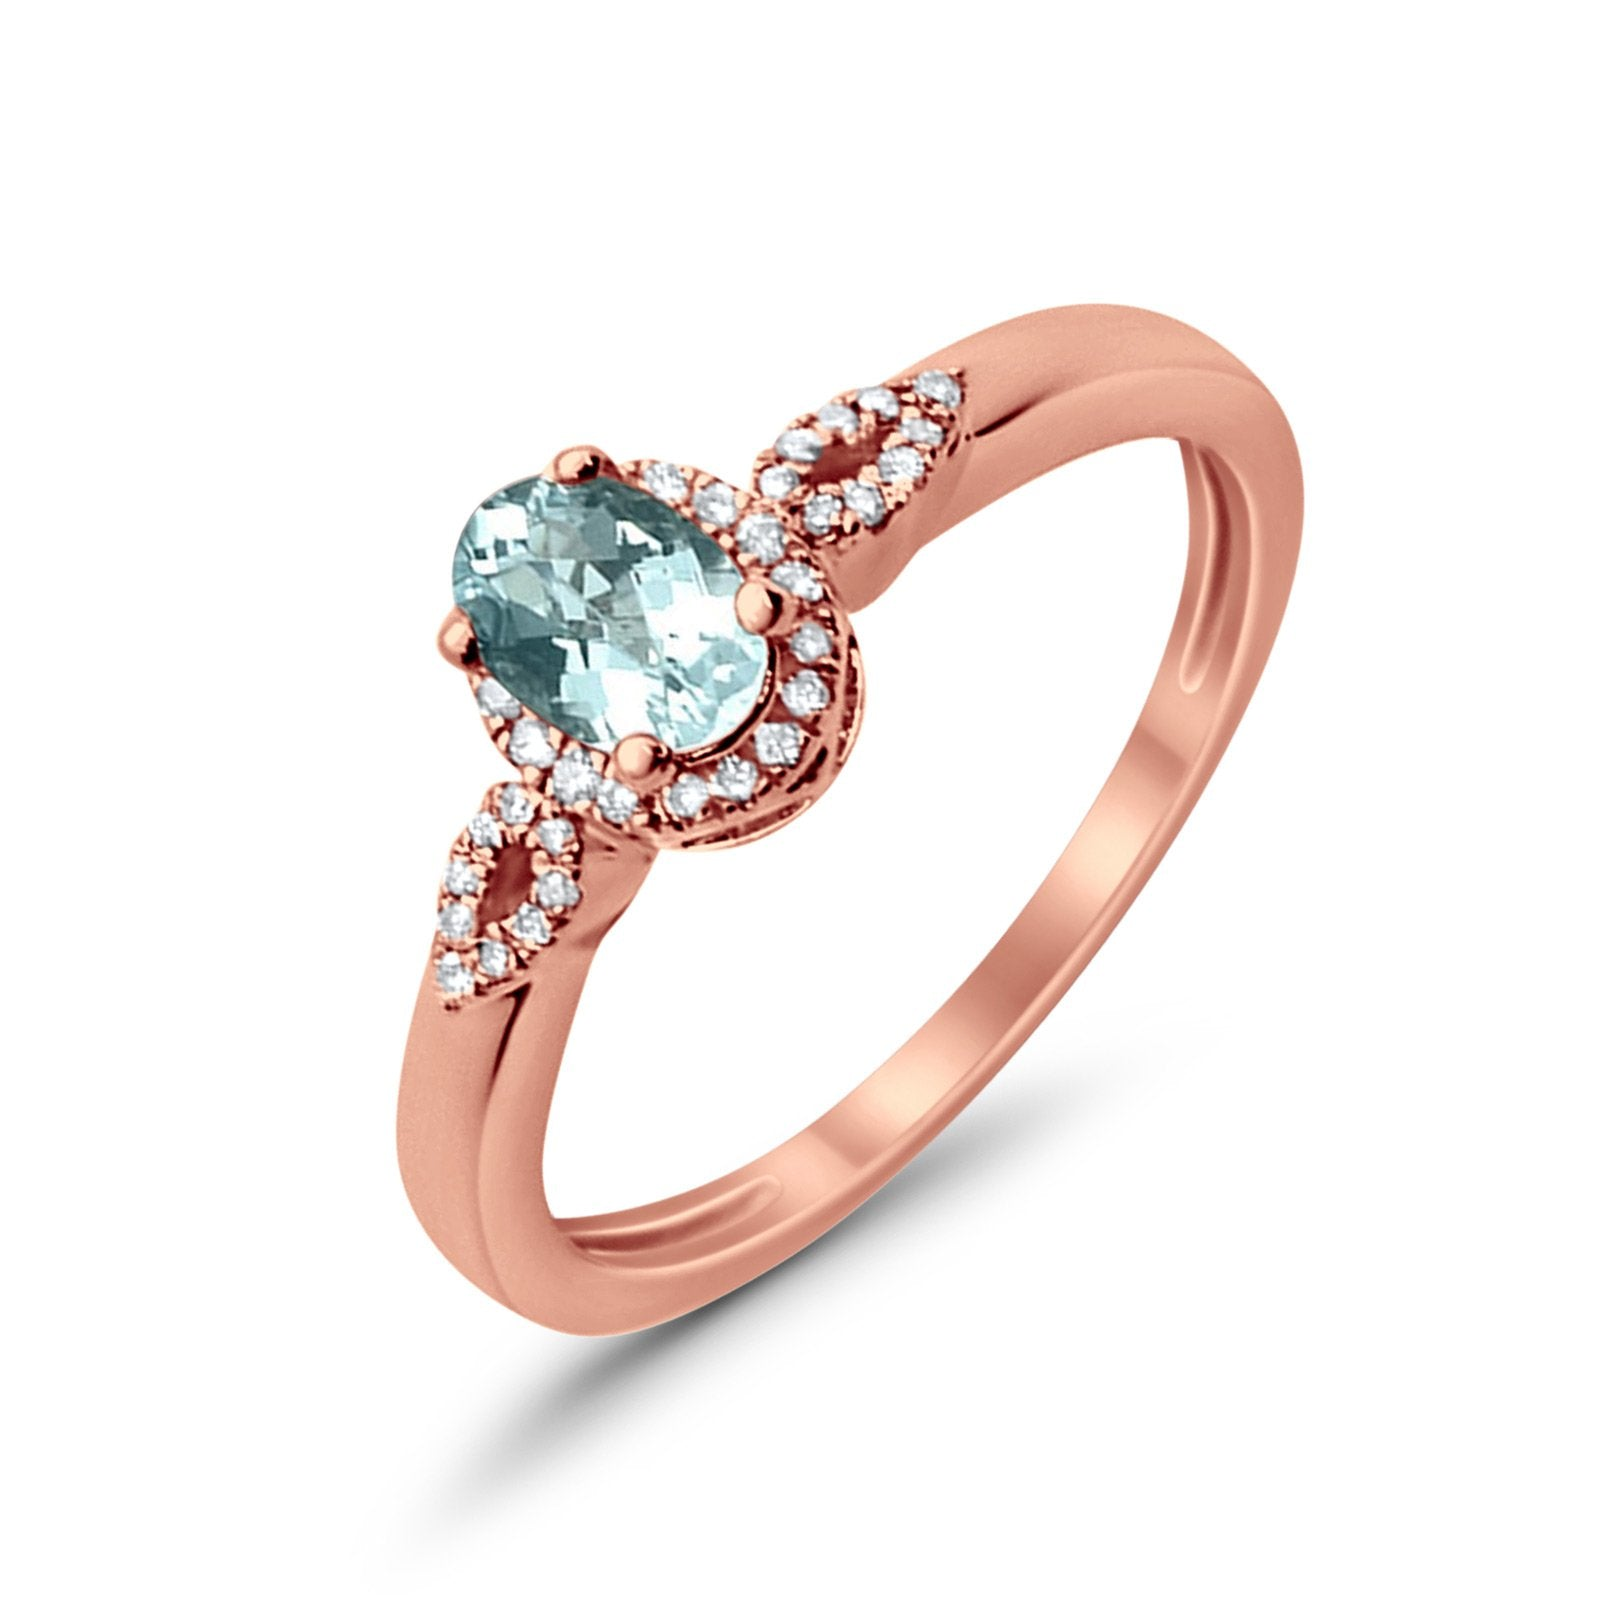 10K Oval 4x6 mm Diamond Ring .47cts Rose Gold Aquamarine Size 6.5